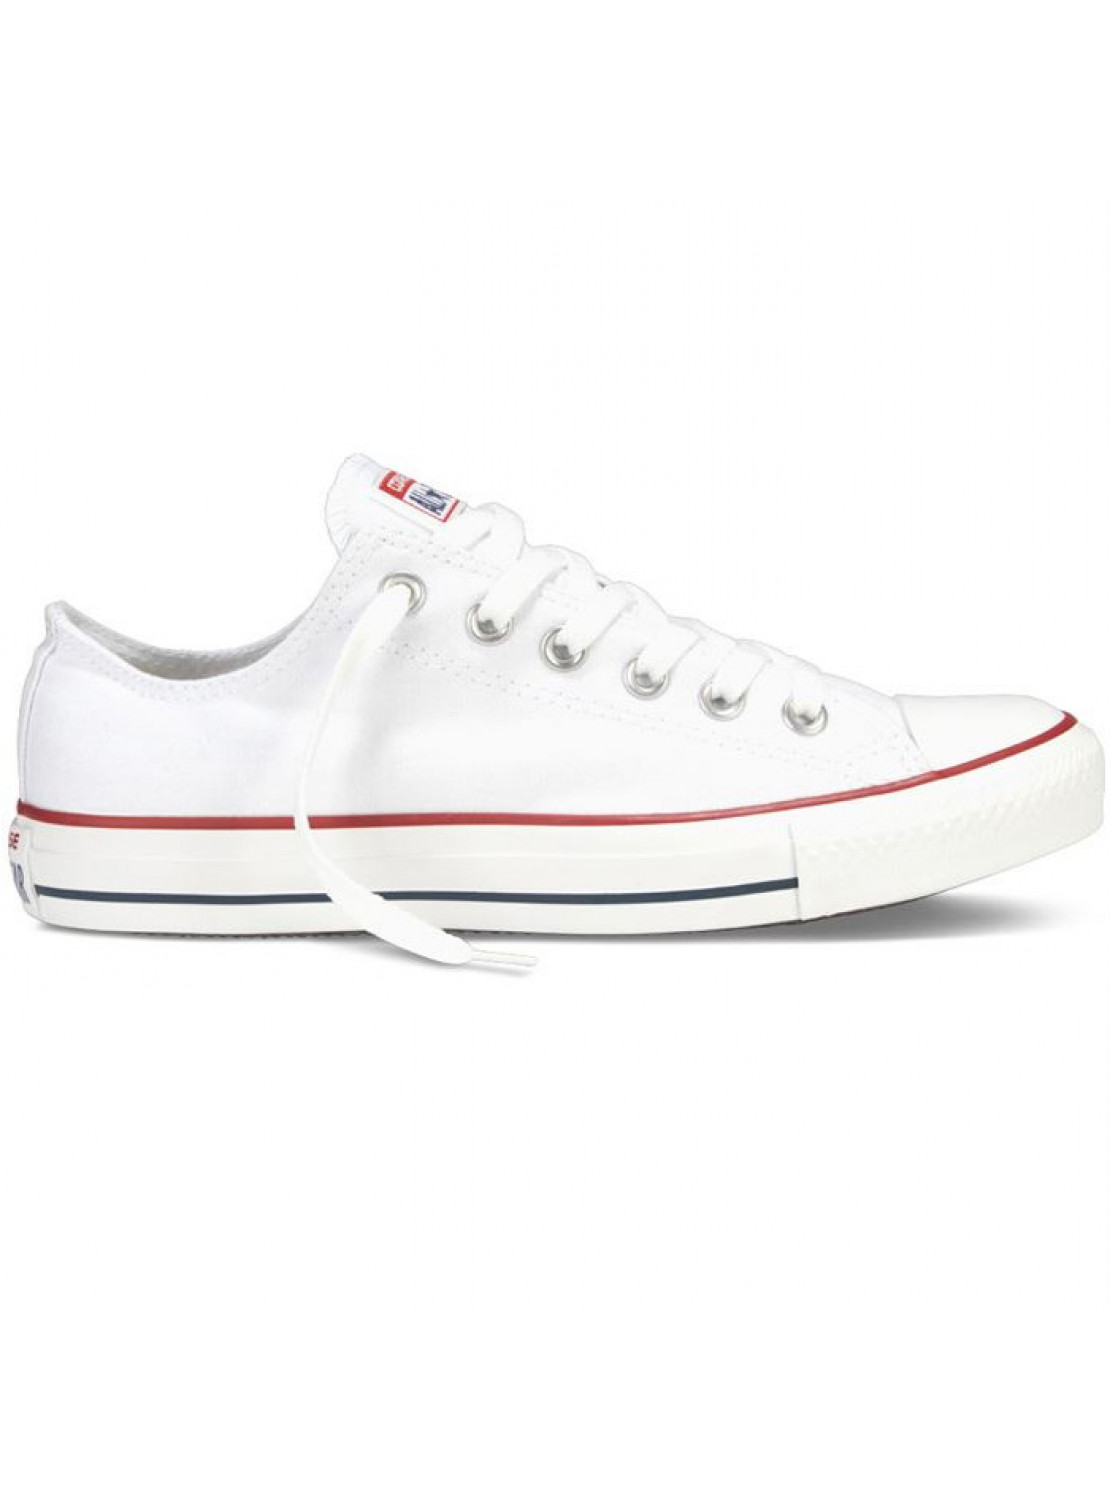 converse chuck taylor all star blancas mujer